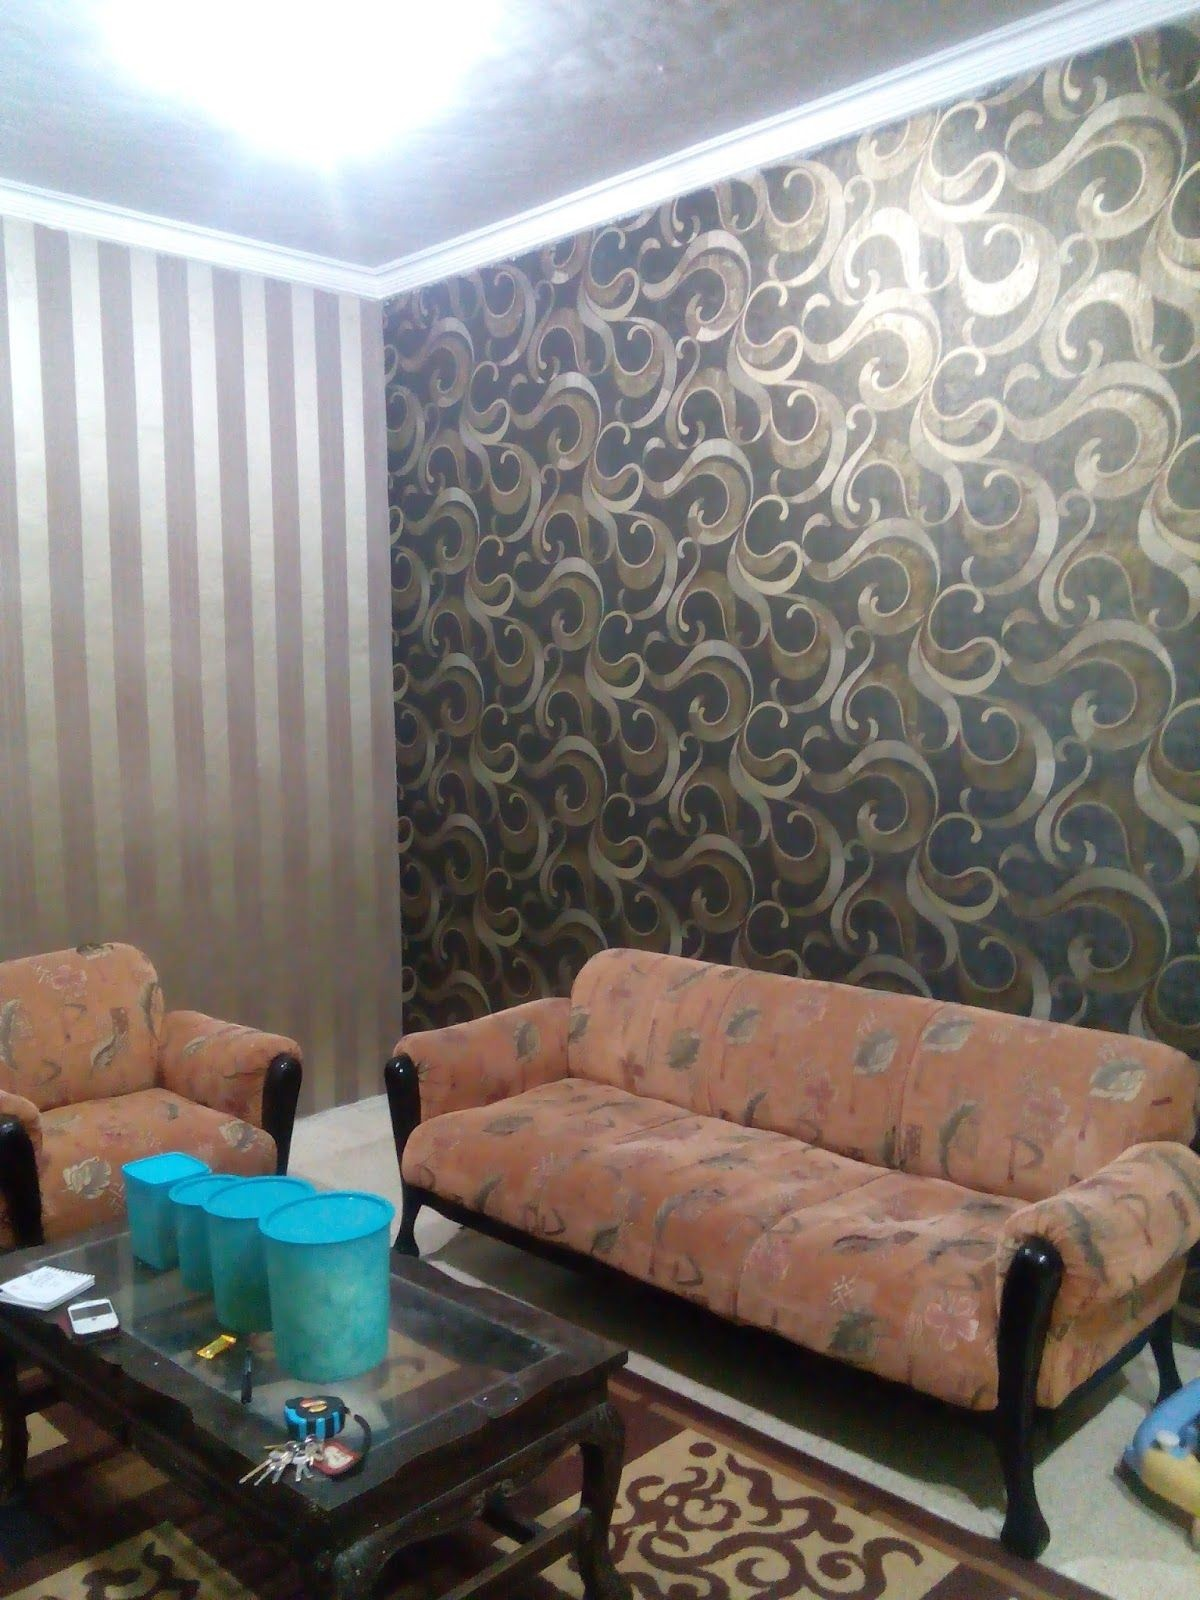 0821 3267 3033 Wallpaper Dinding Malang Wallpaper Dinding Murah